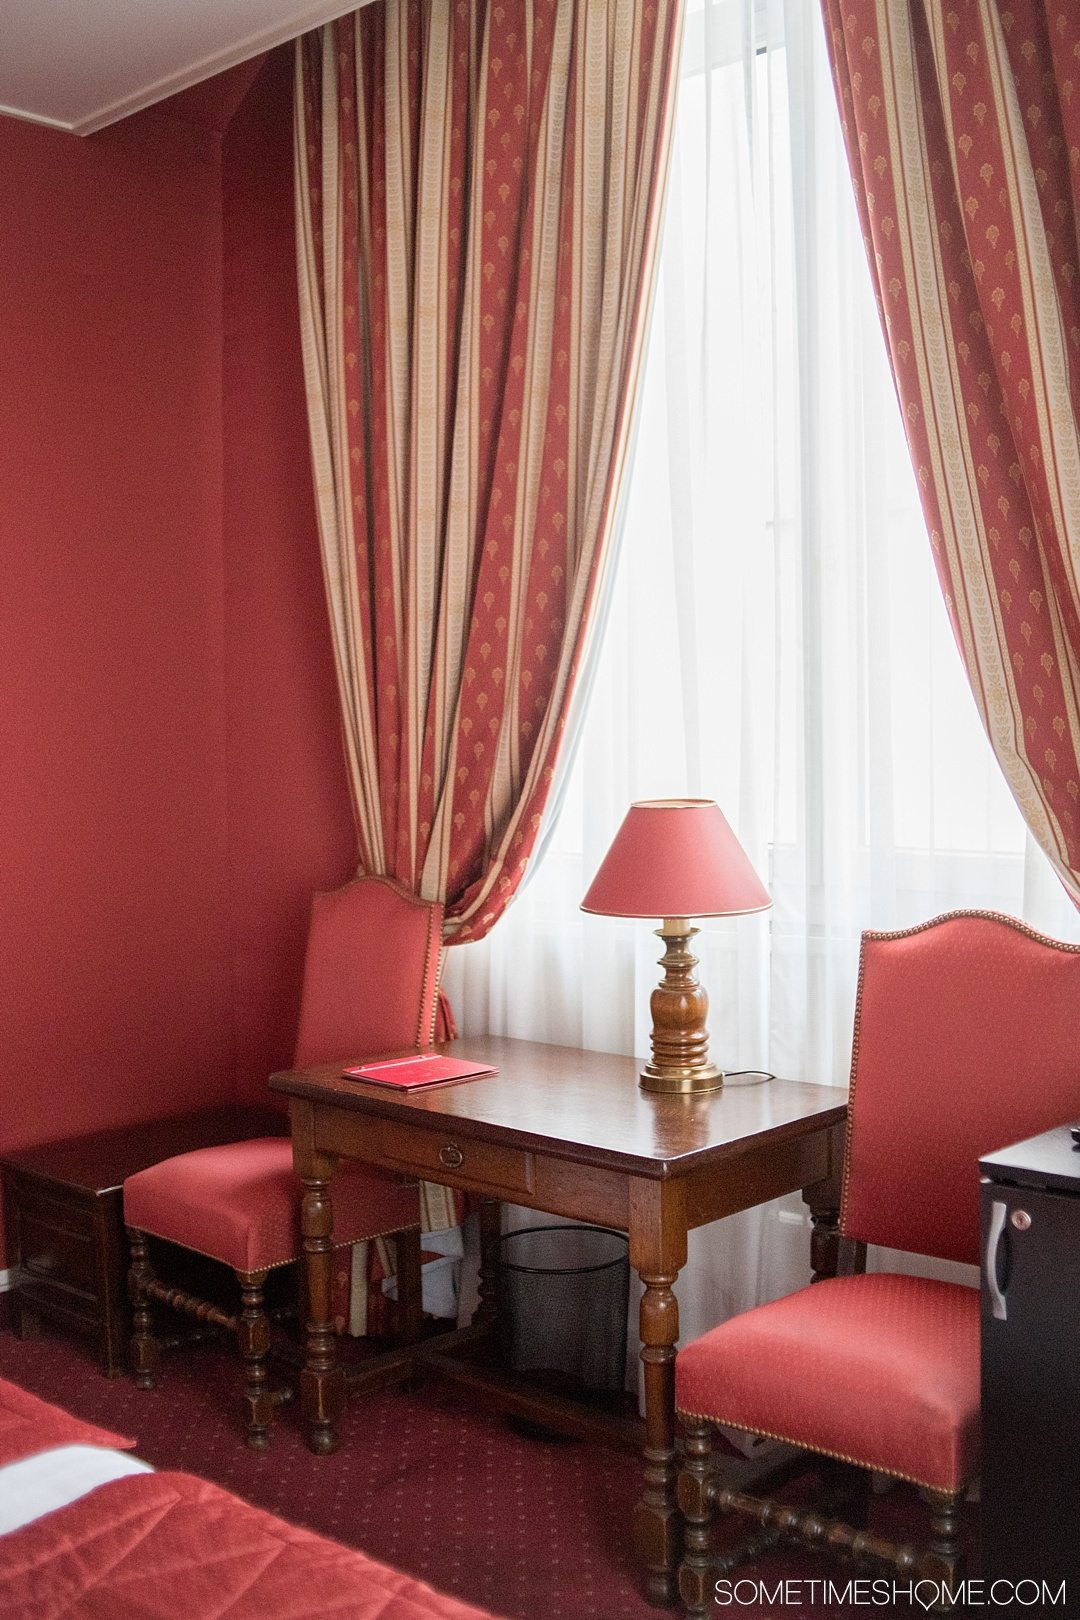 Paris hotel cozy boutique accommodation with very affordable prices in the historic Le Marais district. Click through to the article for a complete review!